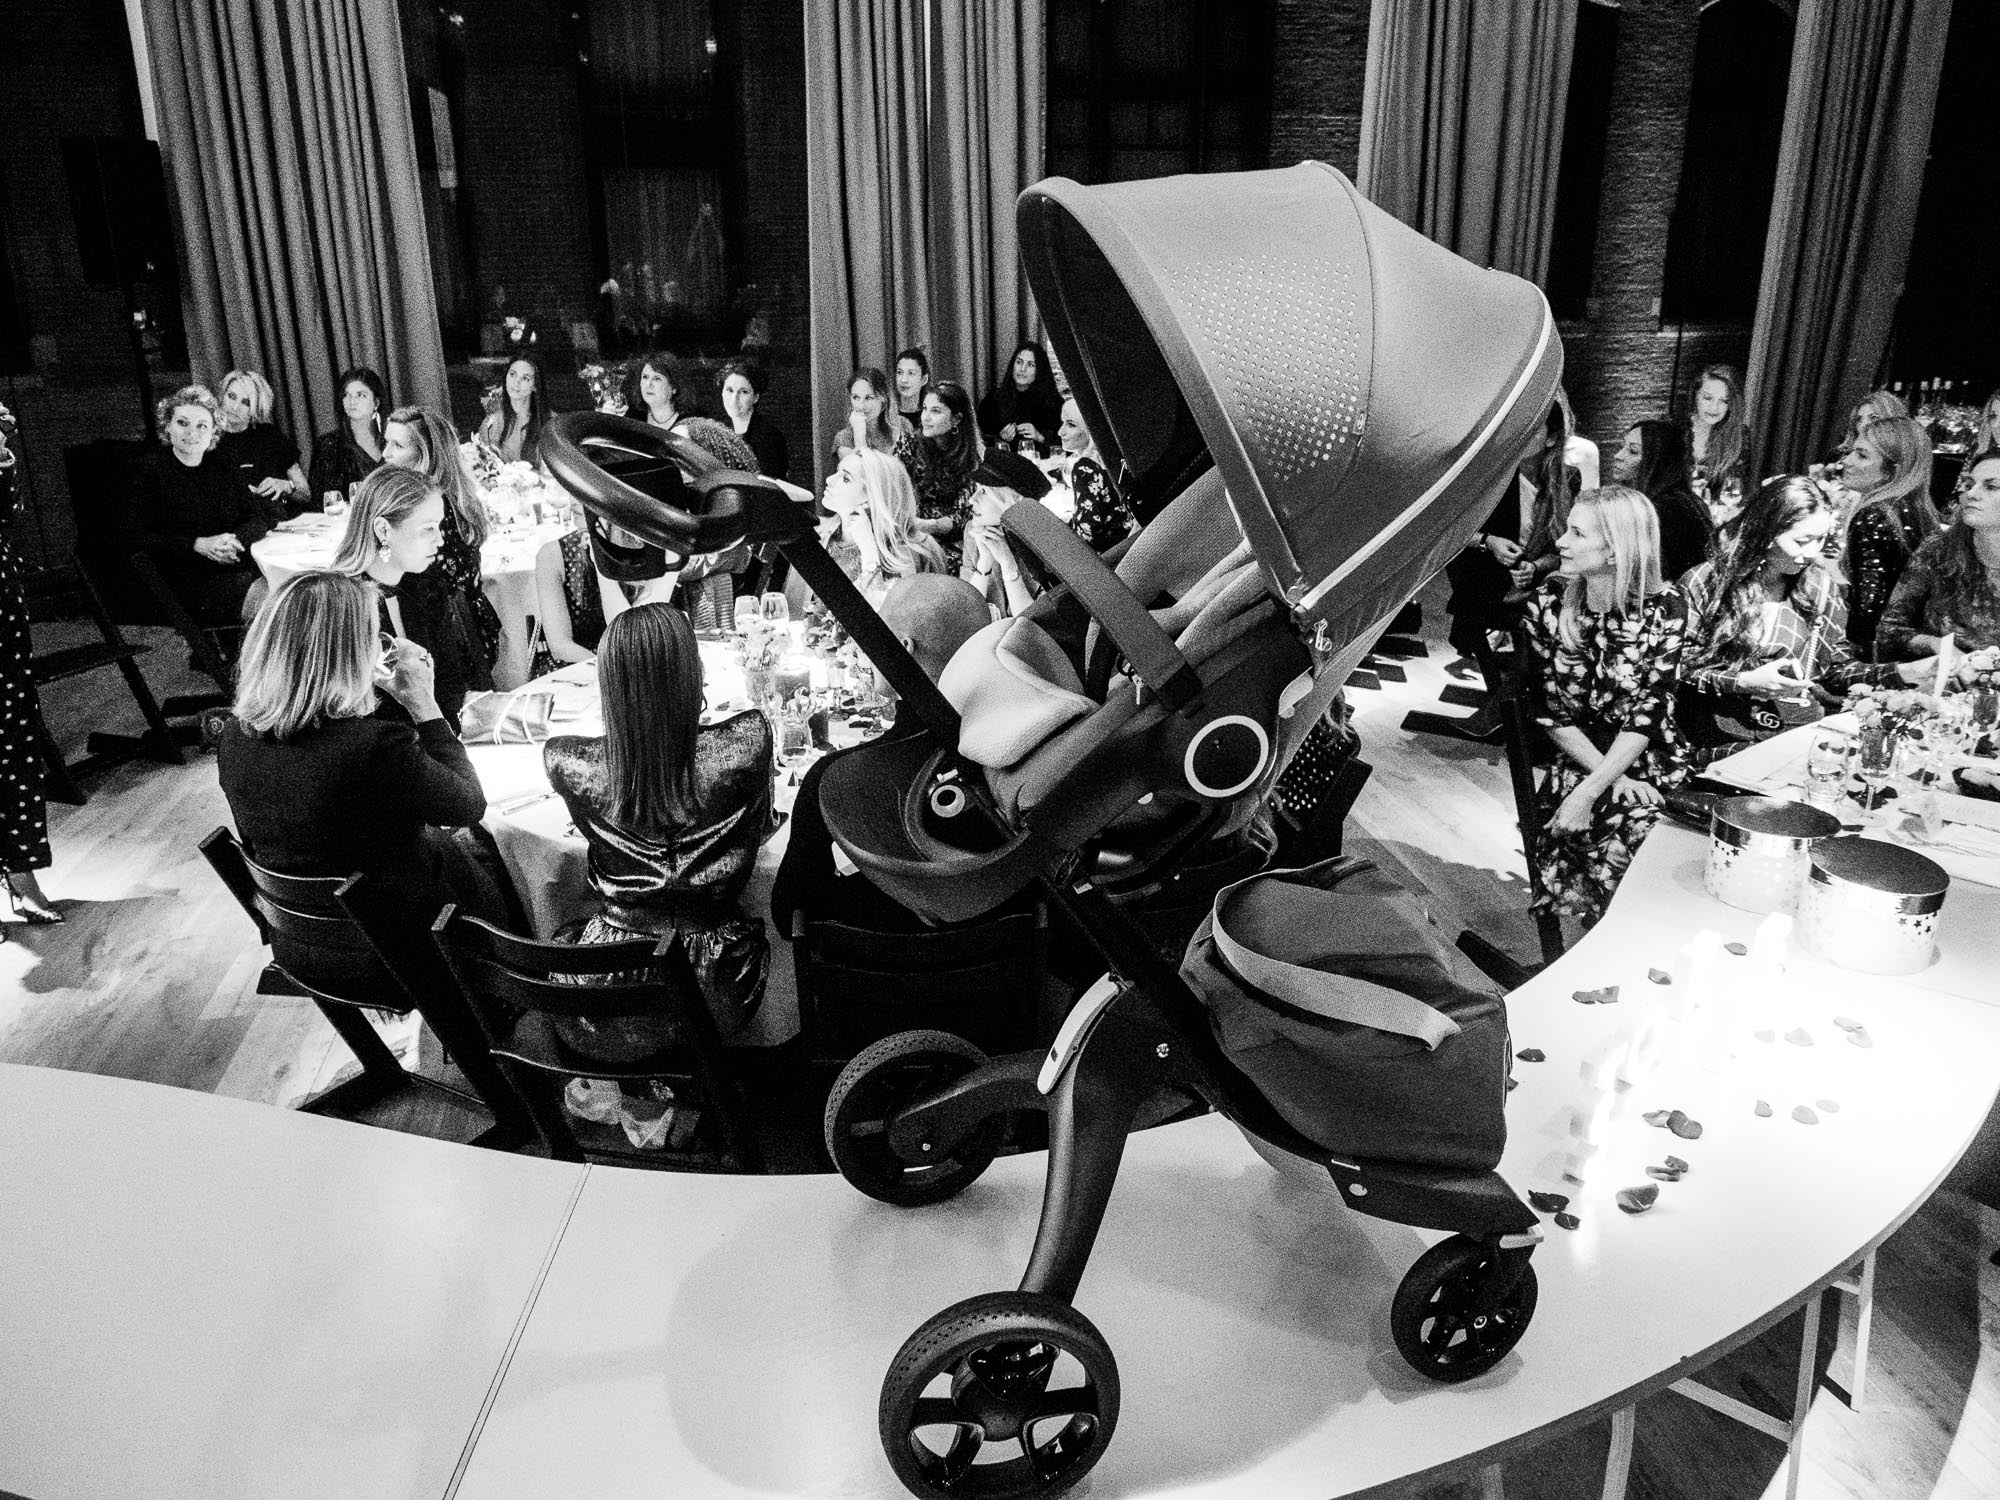 Stokke_TRIPPTRAPPDINNER_Pretapregnant_the-mom_BMW_by_Marinke_Davelaar-468